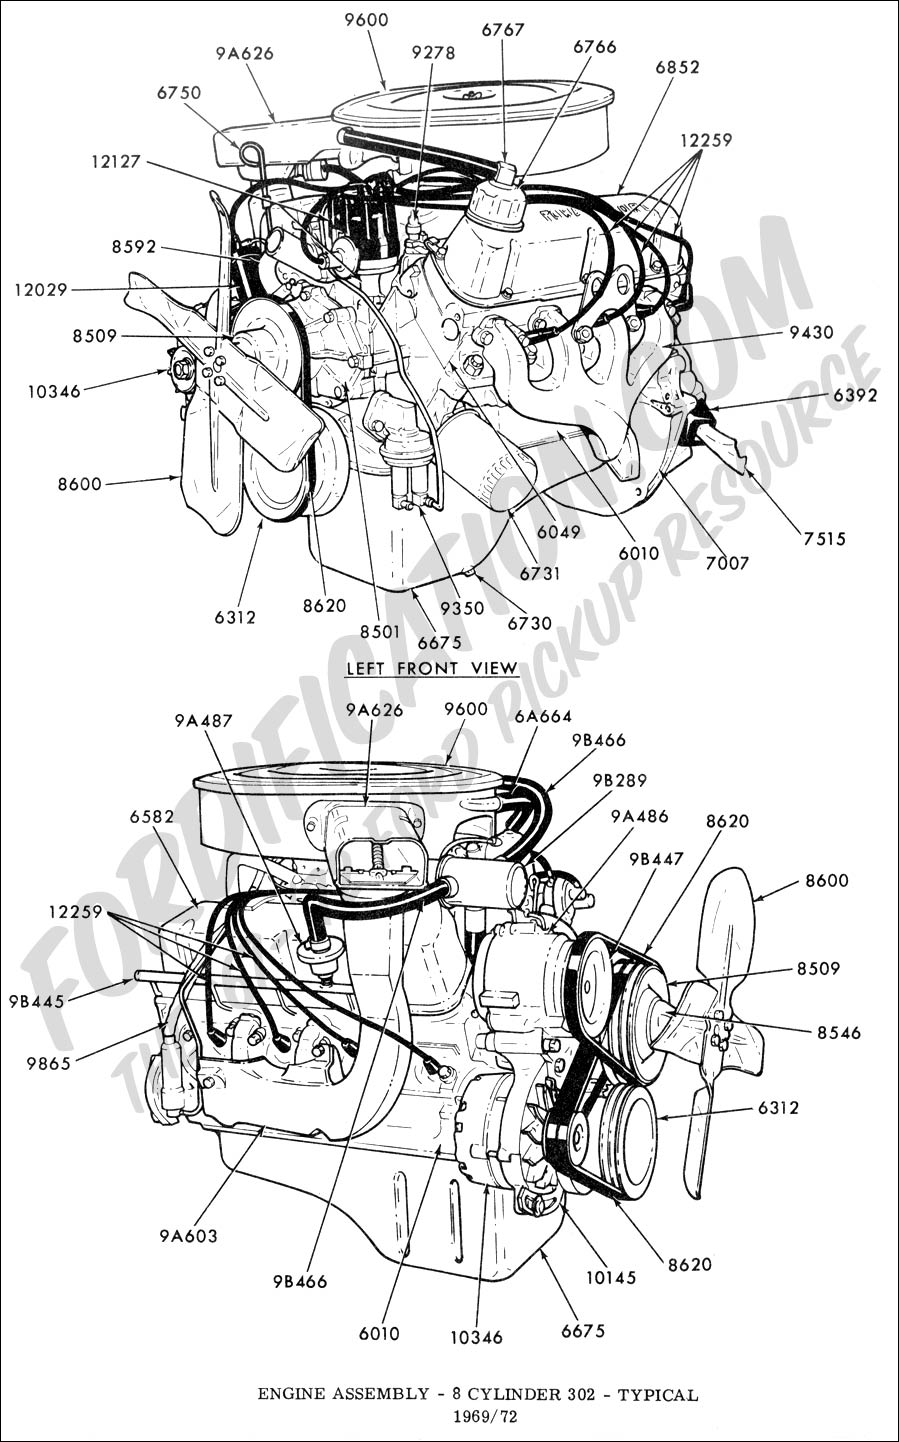 1985 Nissan 720 Wiring Diagram. Nissan. Wiring Diagrams Instructions